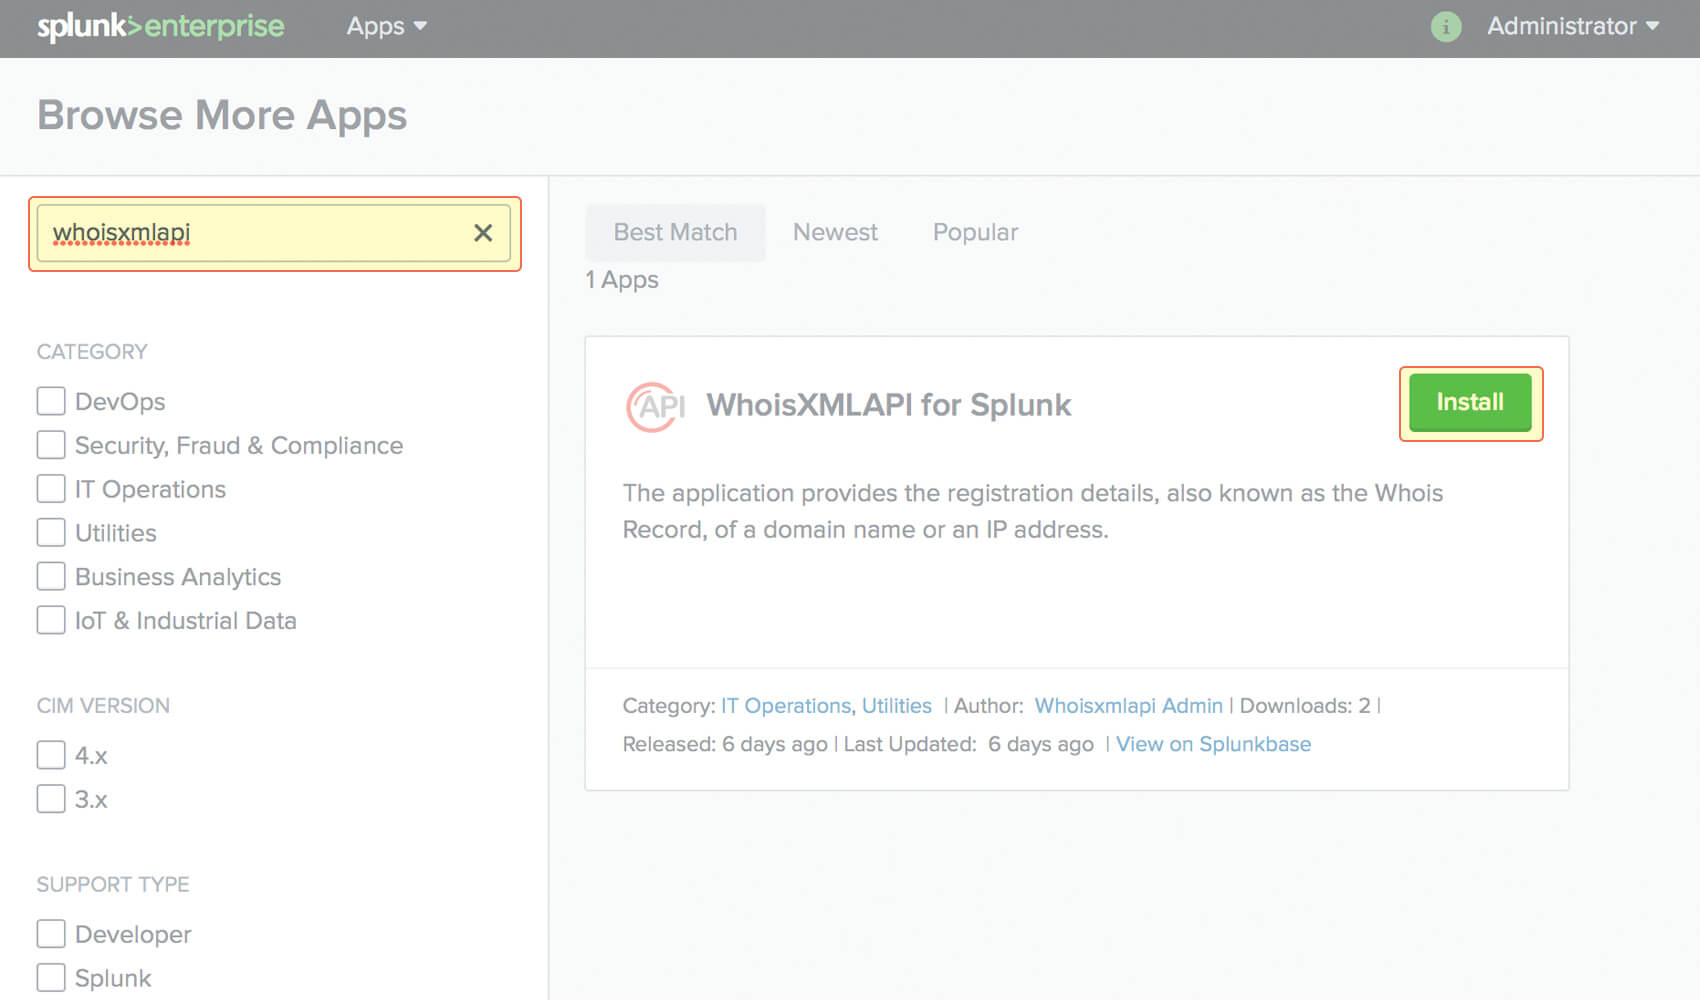 Download and install the application. This can be done from within Splunk.